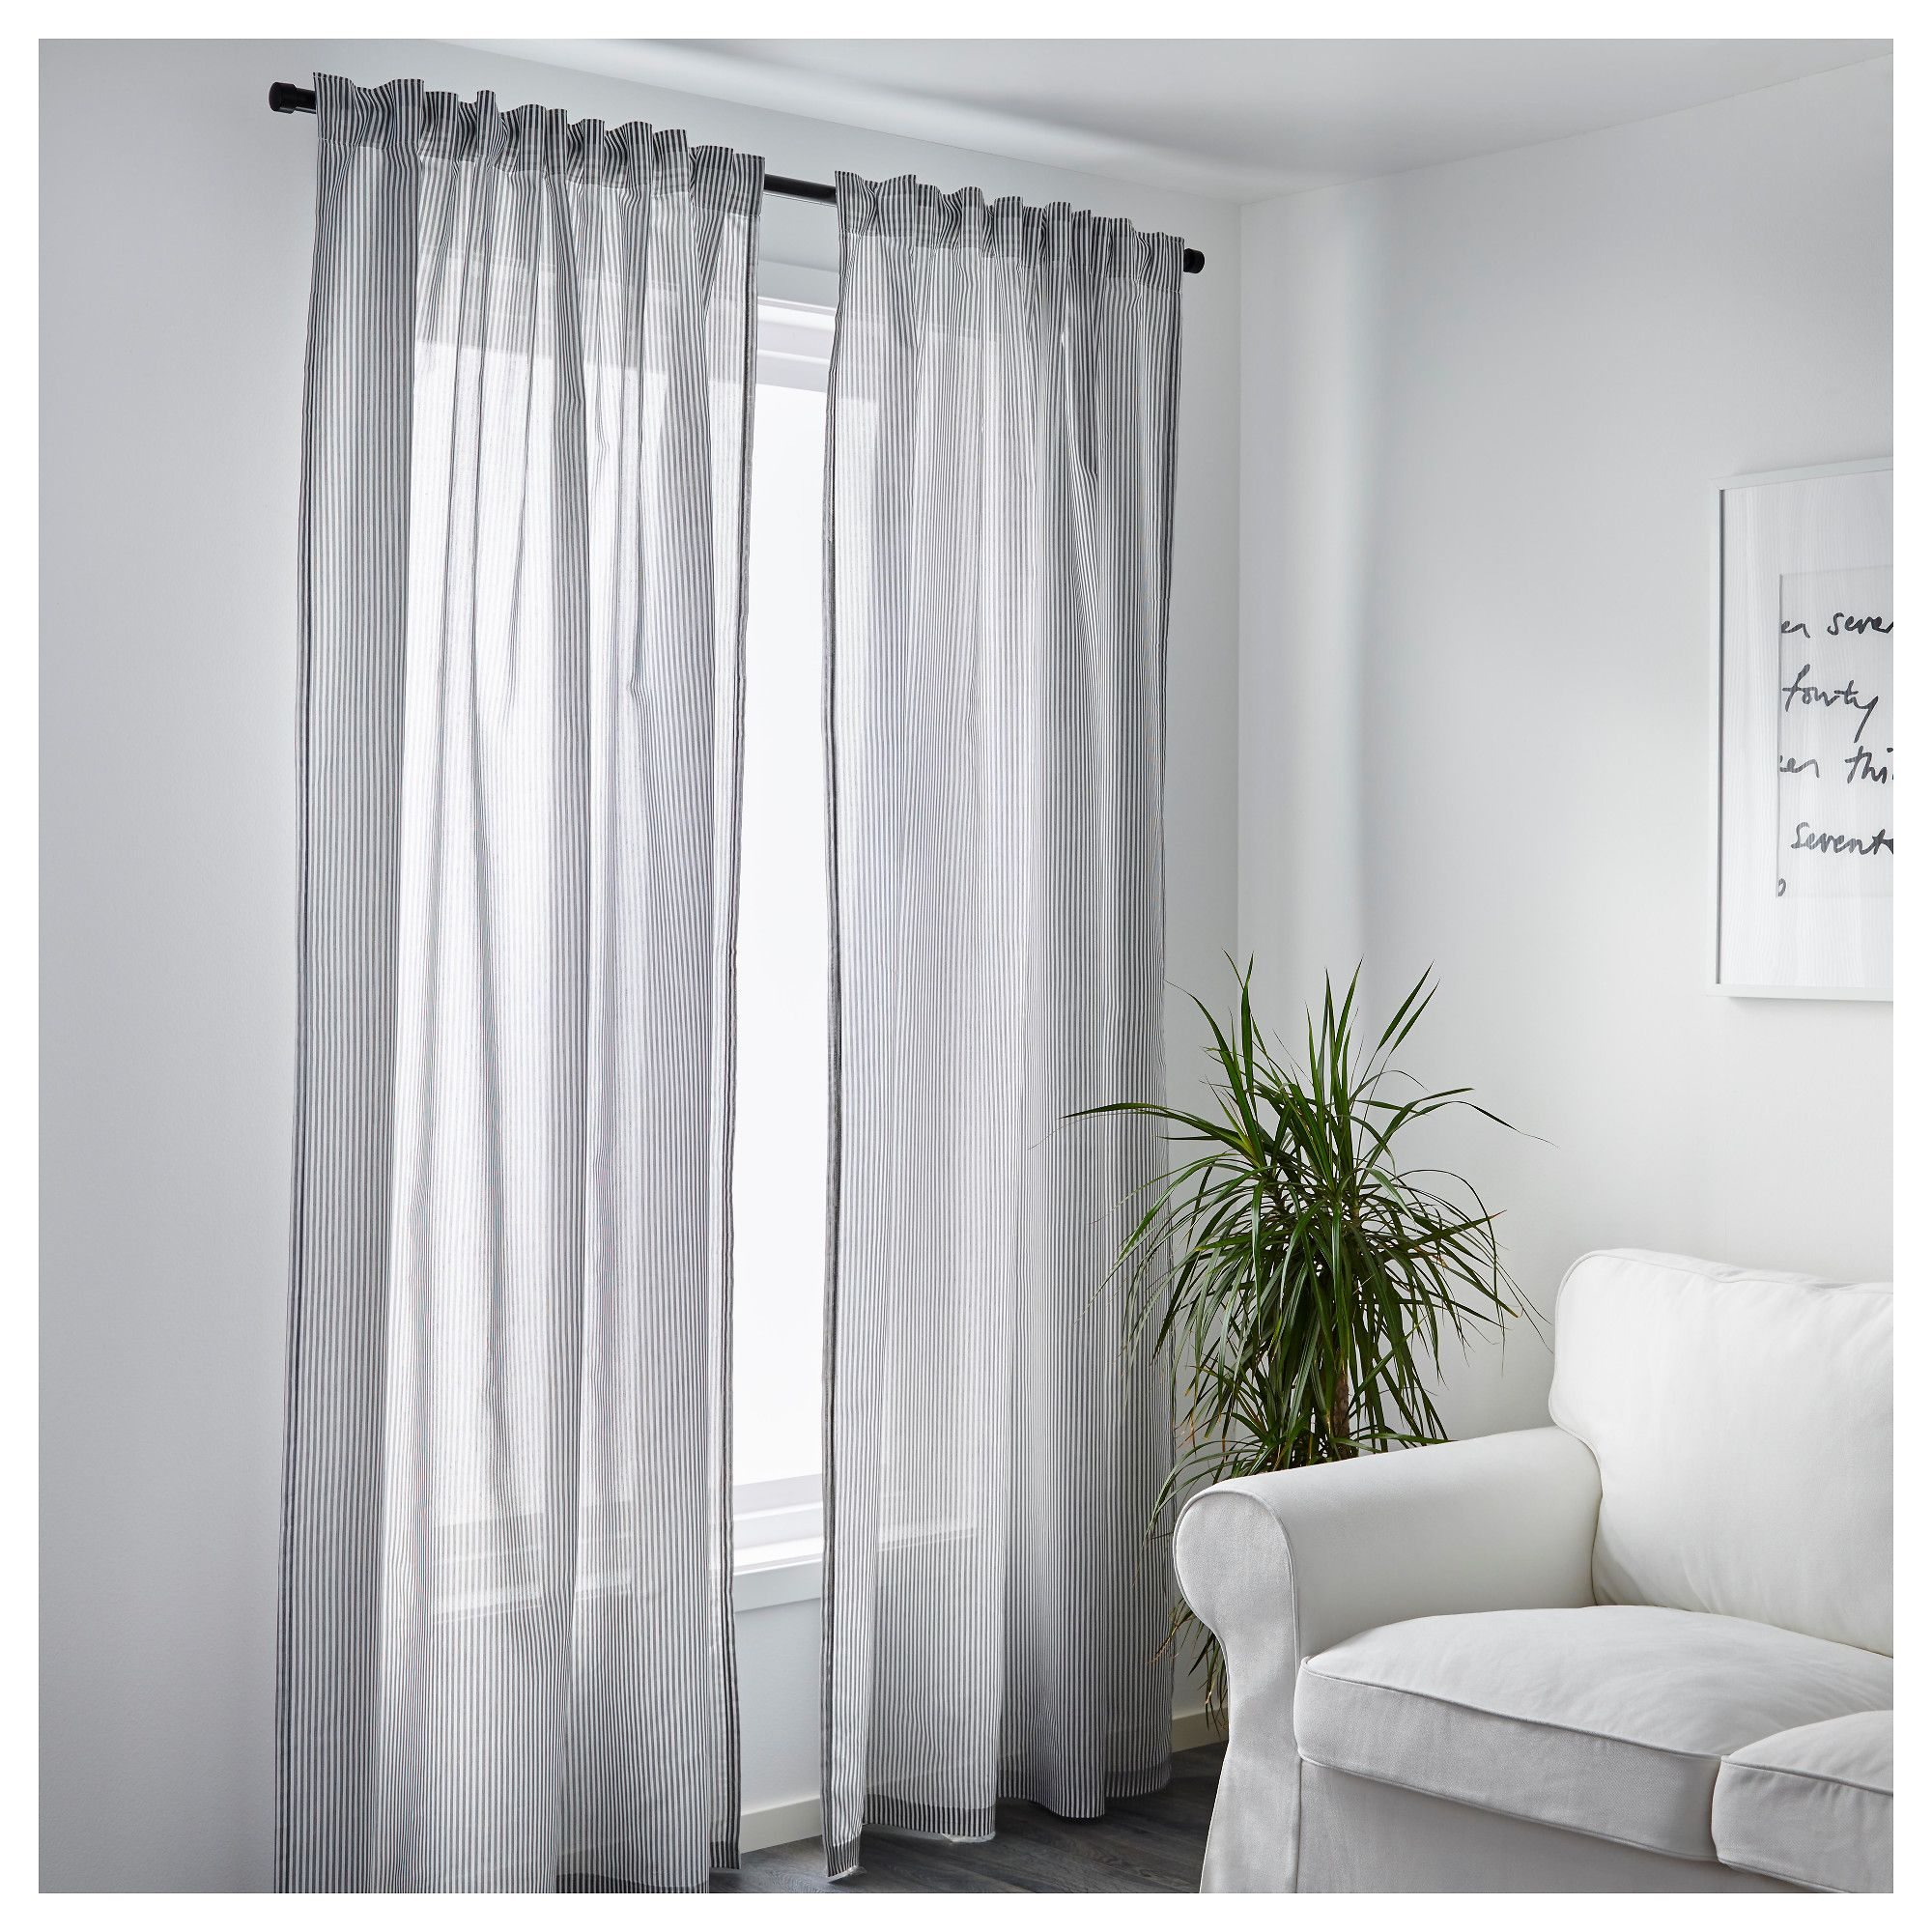 Bunk bed curtains ikea the curtains are four lenda - Ikea Gulsporre Curtains 1 Pair The Curtains Can Be Used On A Curtain Rod Or